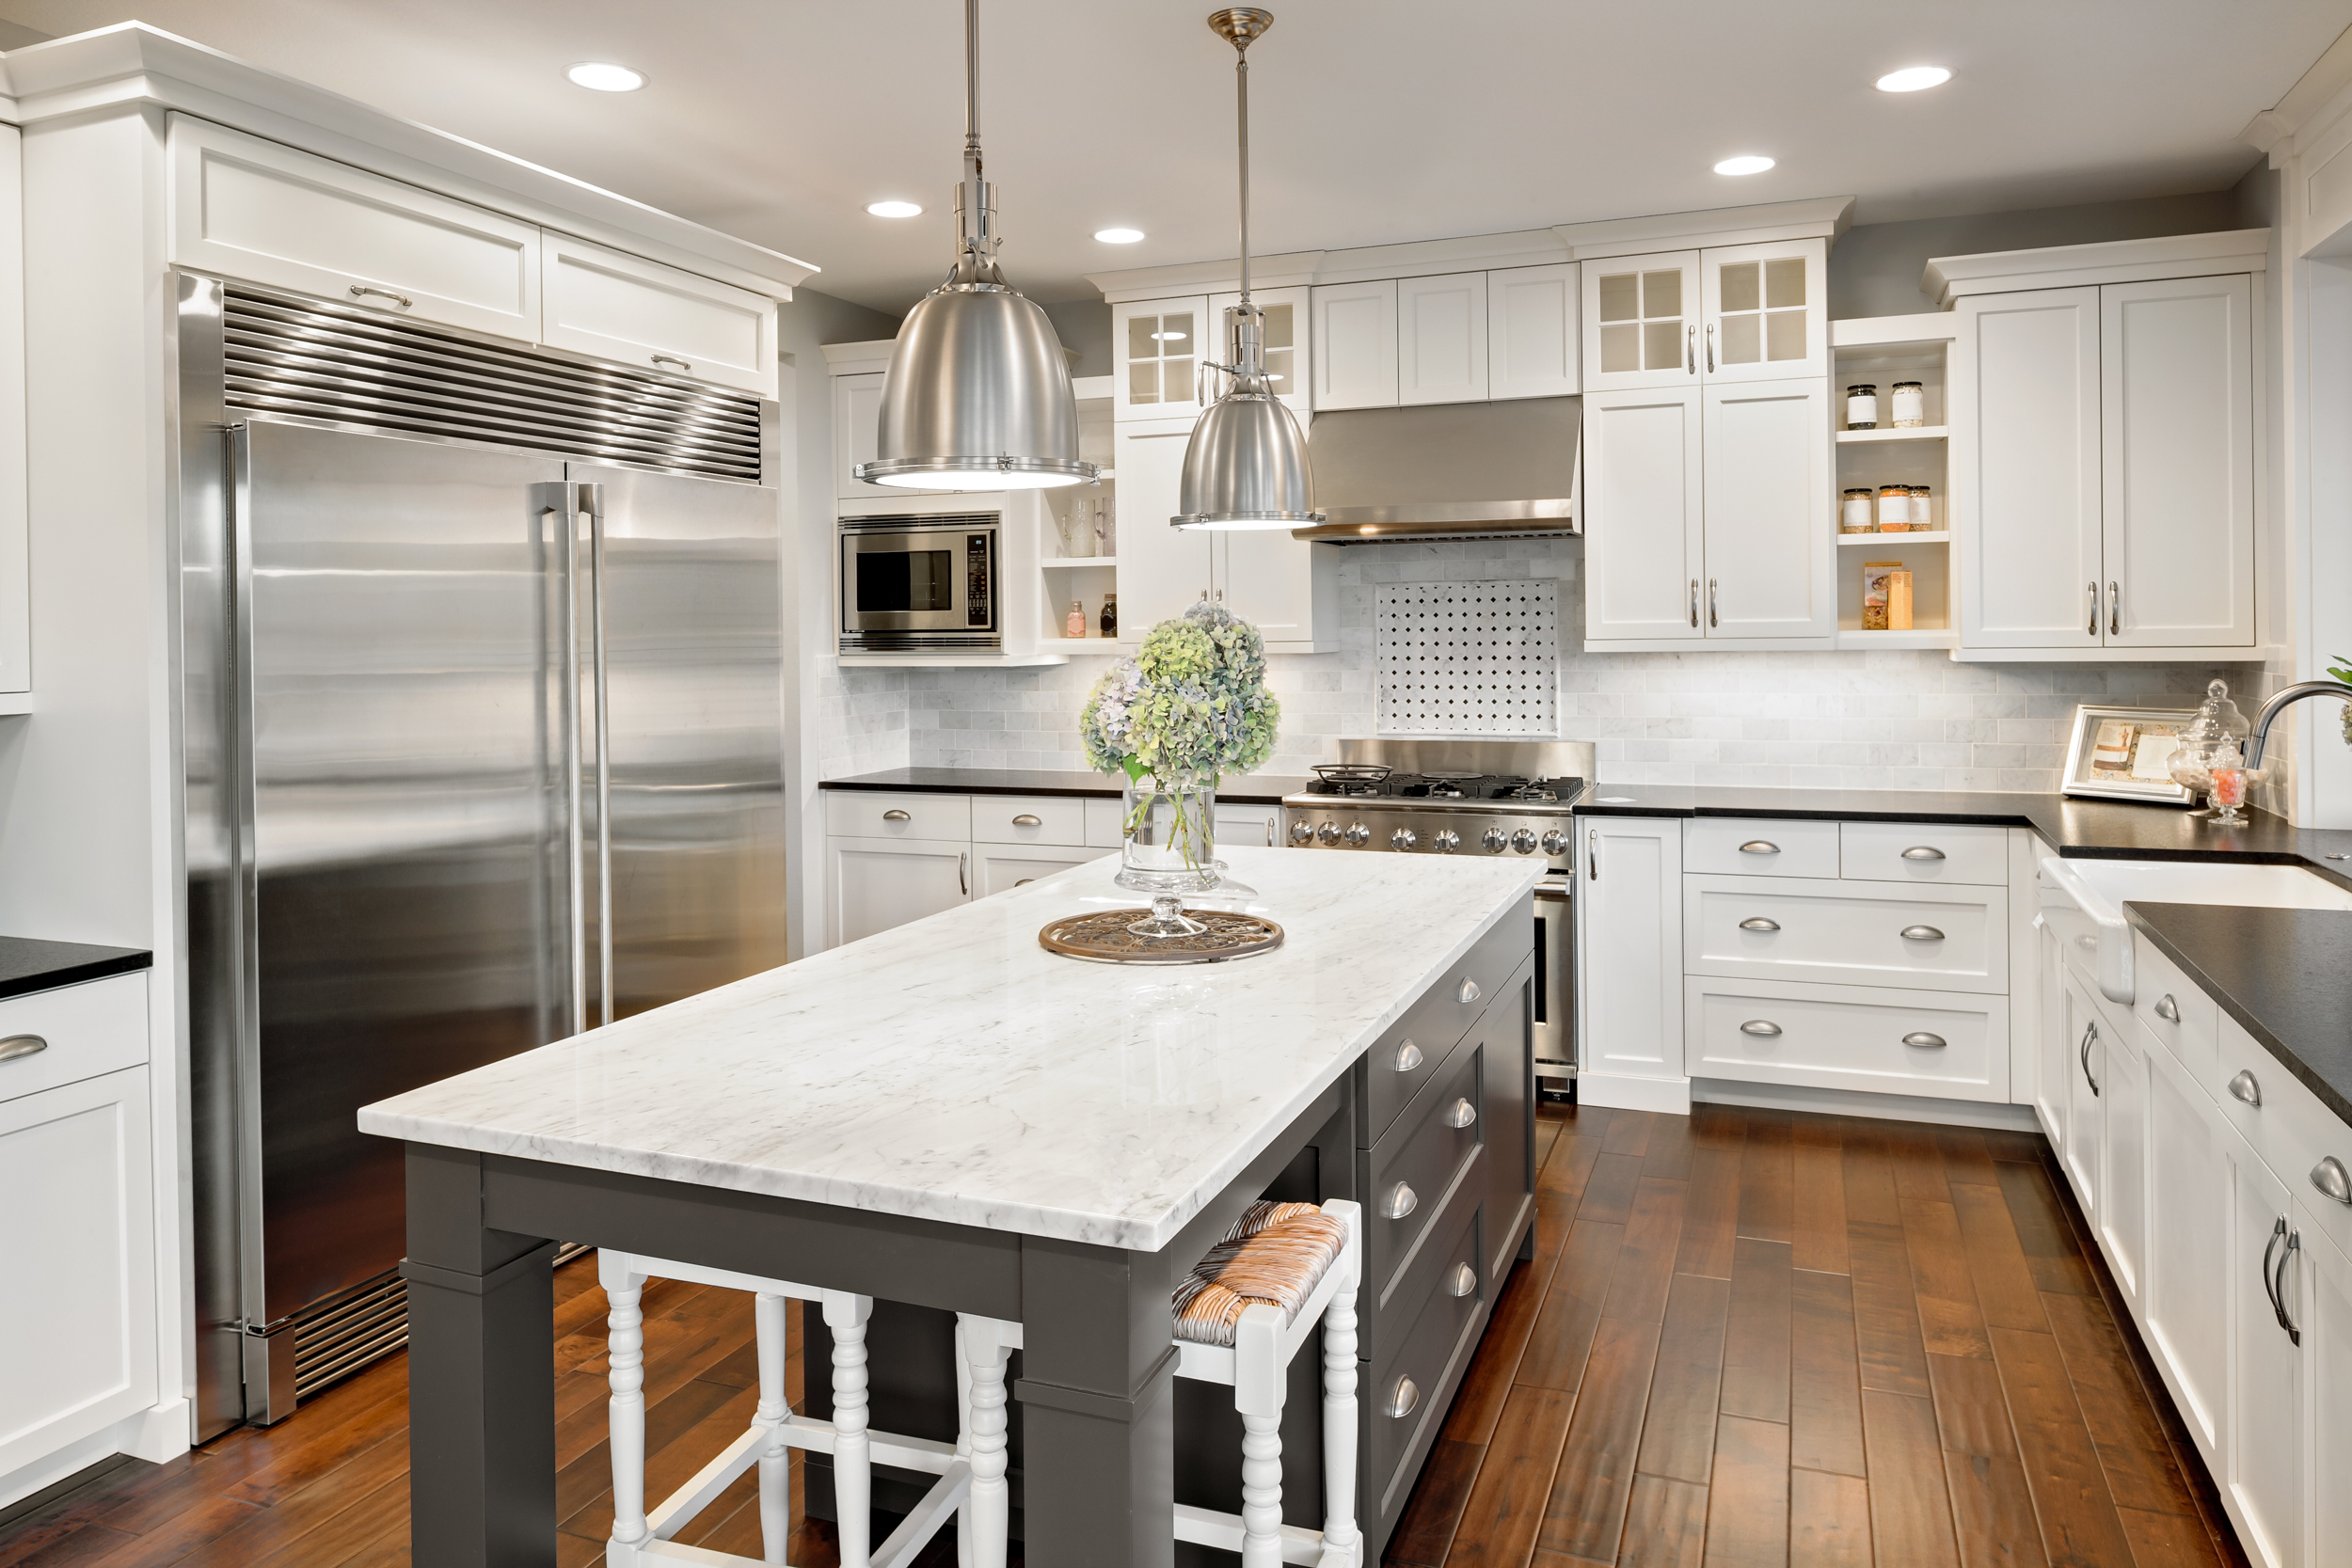 Remodeled kitchen with white cabinets and modern appliances.